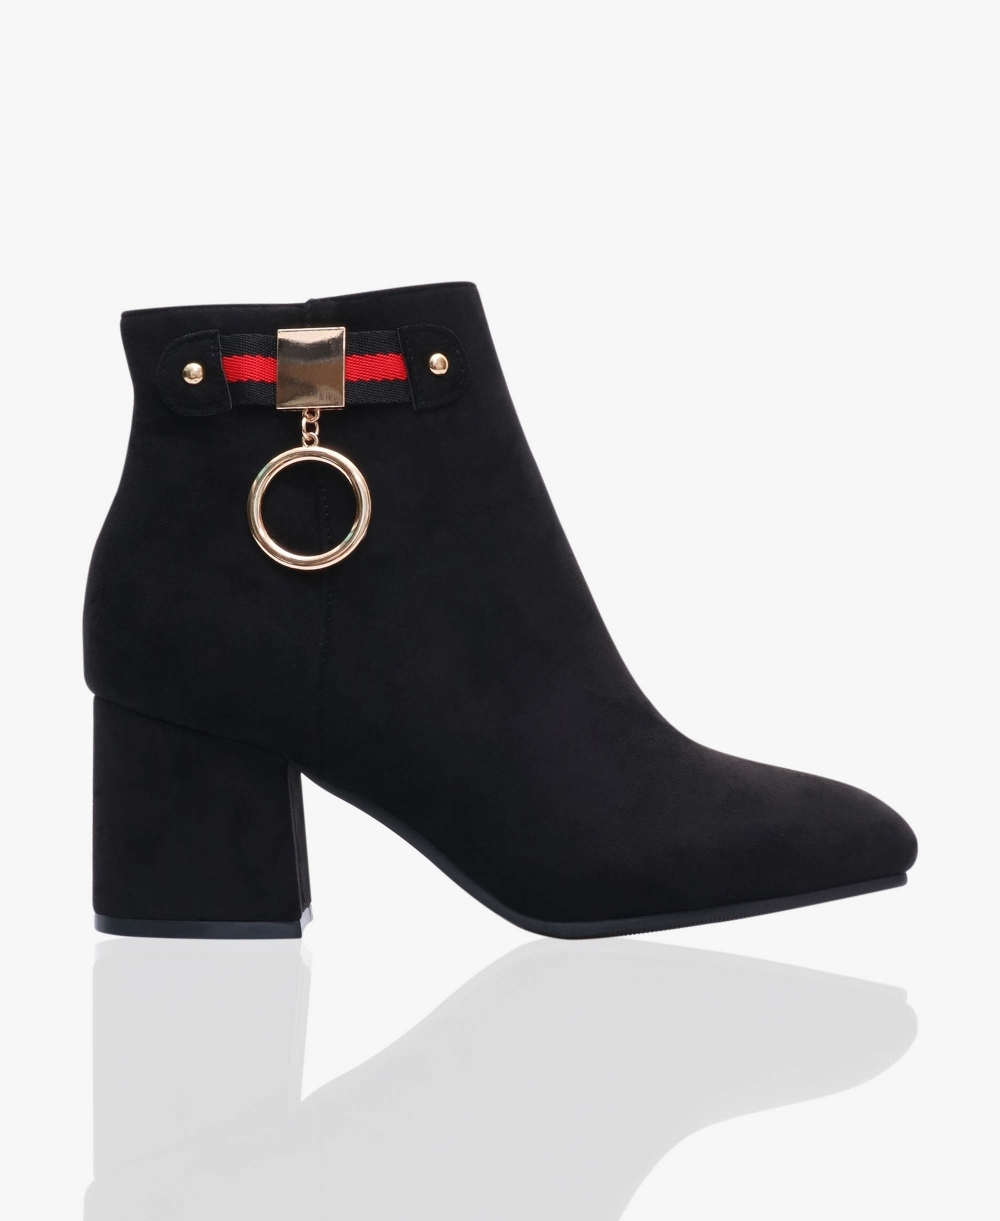 f6850566ce2a Low Heel Ankle Boots with Charm